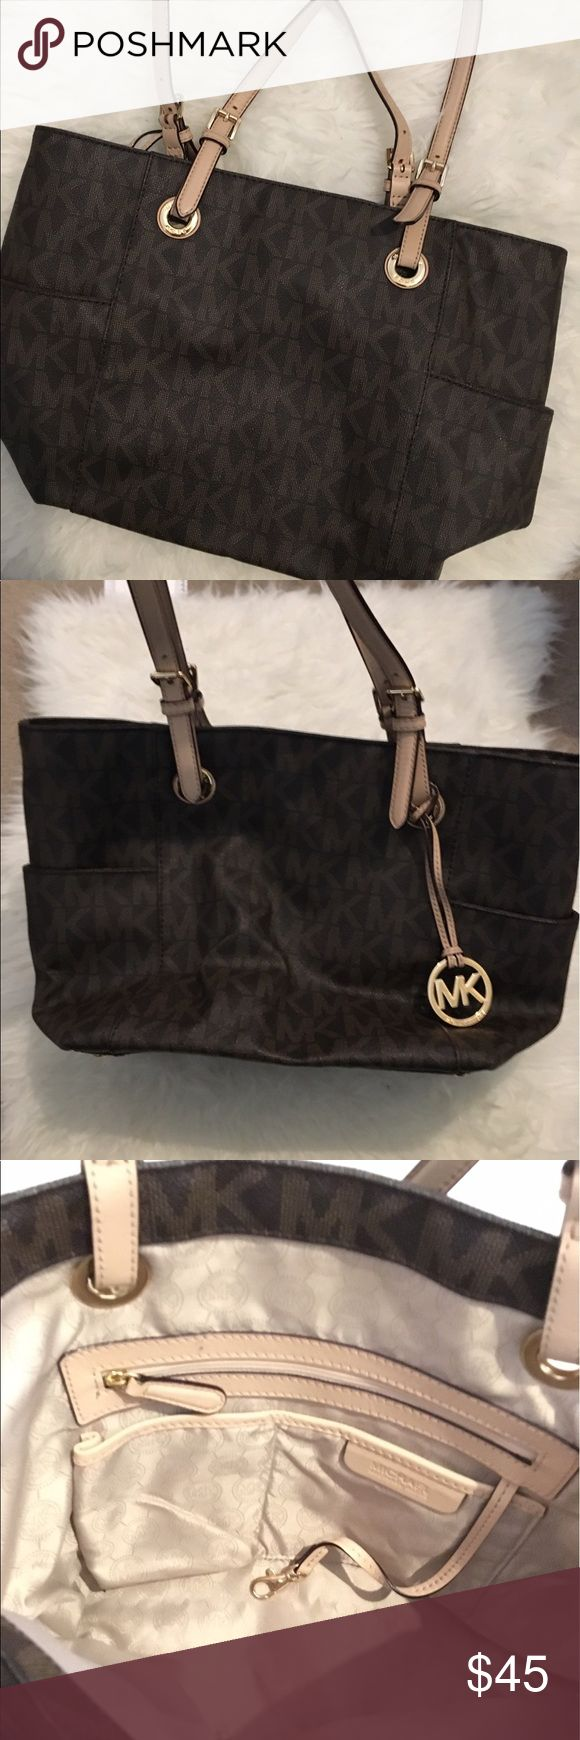 Michael Kors Monogram Tote Bag The straps are a little dirty / purse on the inside and outside is in good condition / no trades sorry / make an offer that is reasonable 💕 Michael Kors Bags Totes